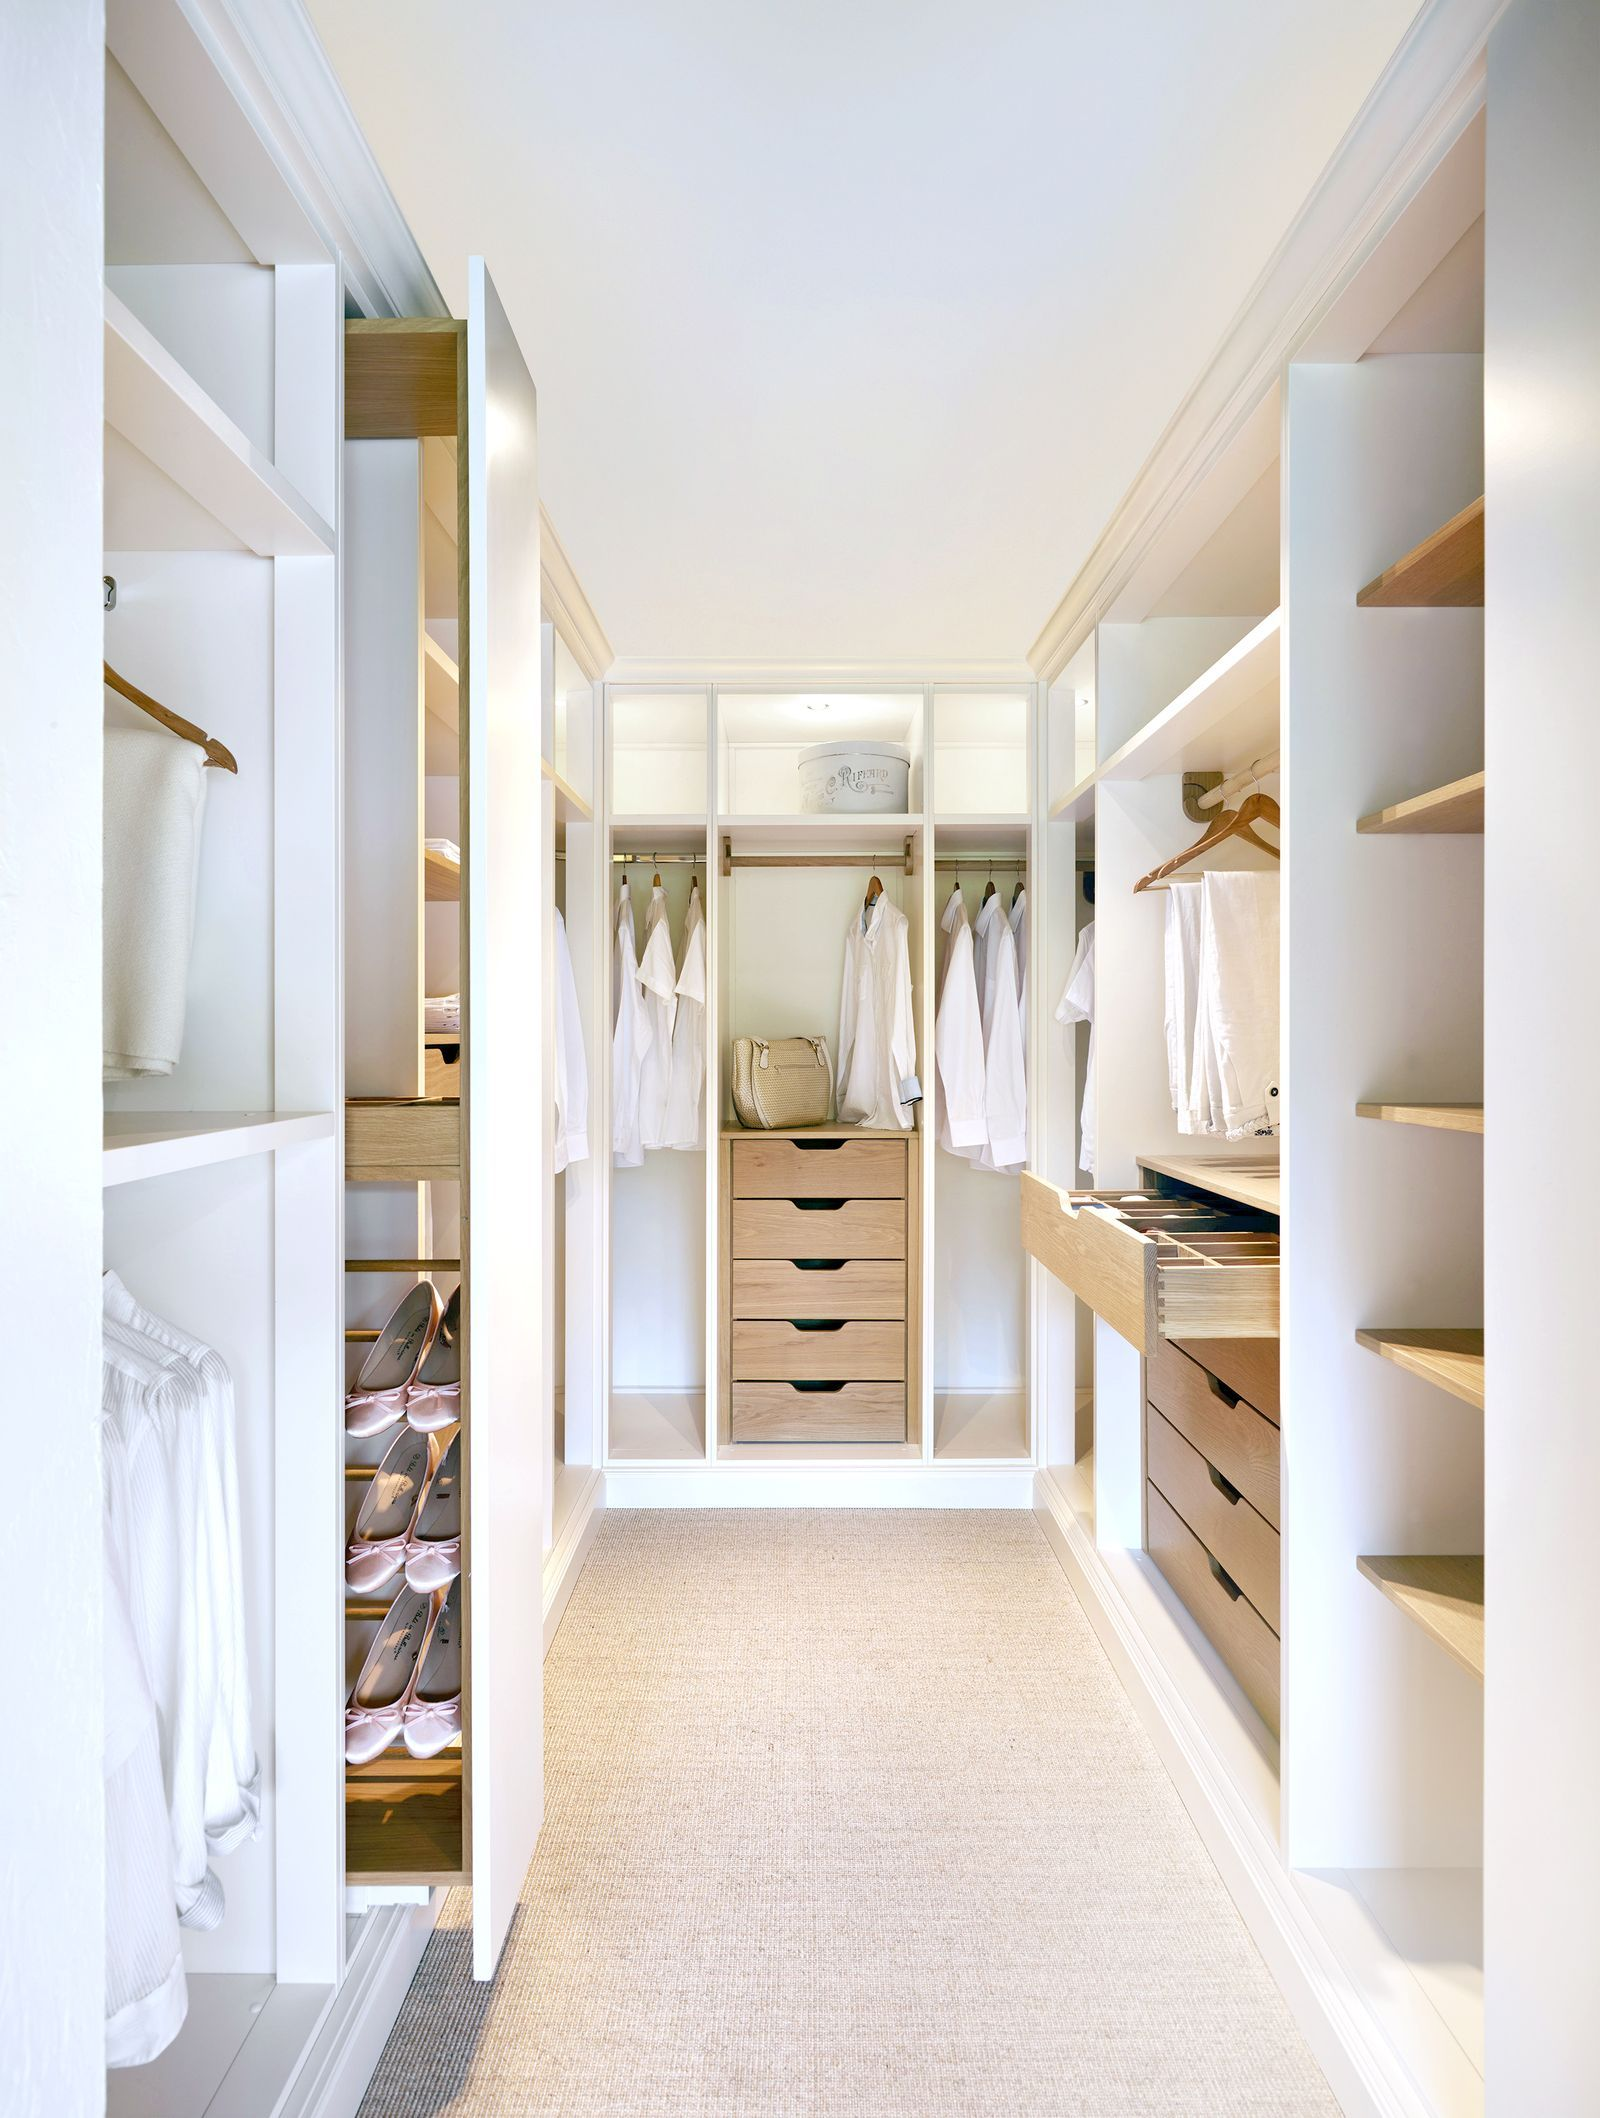 9 clever walk-in wardrobe ideas to help you create your dream closet